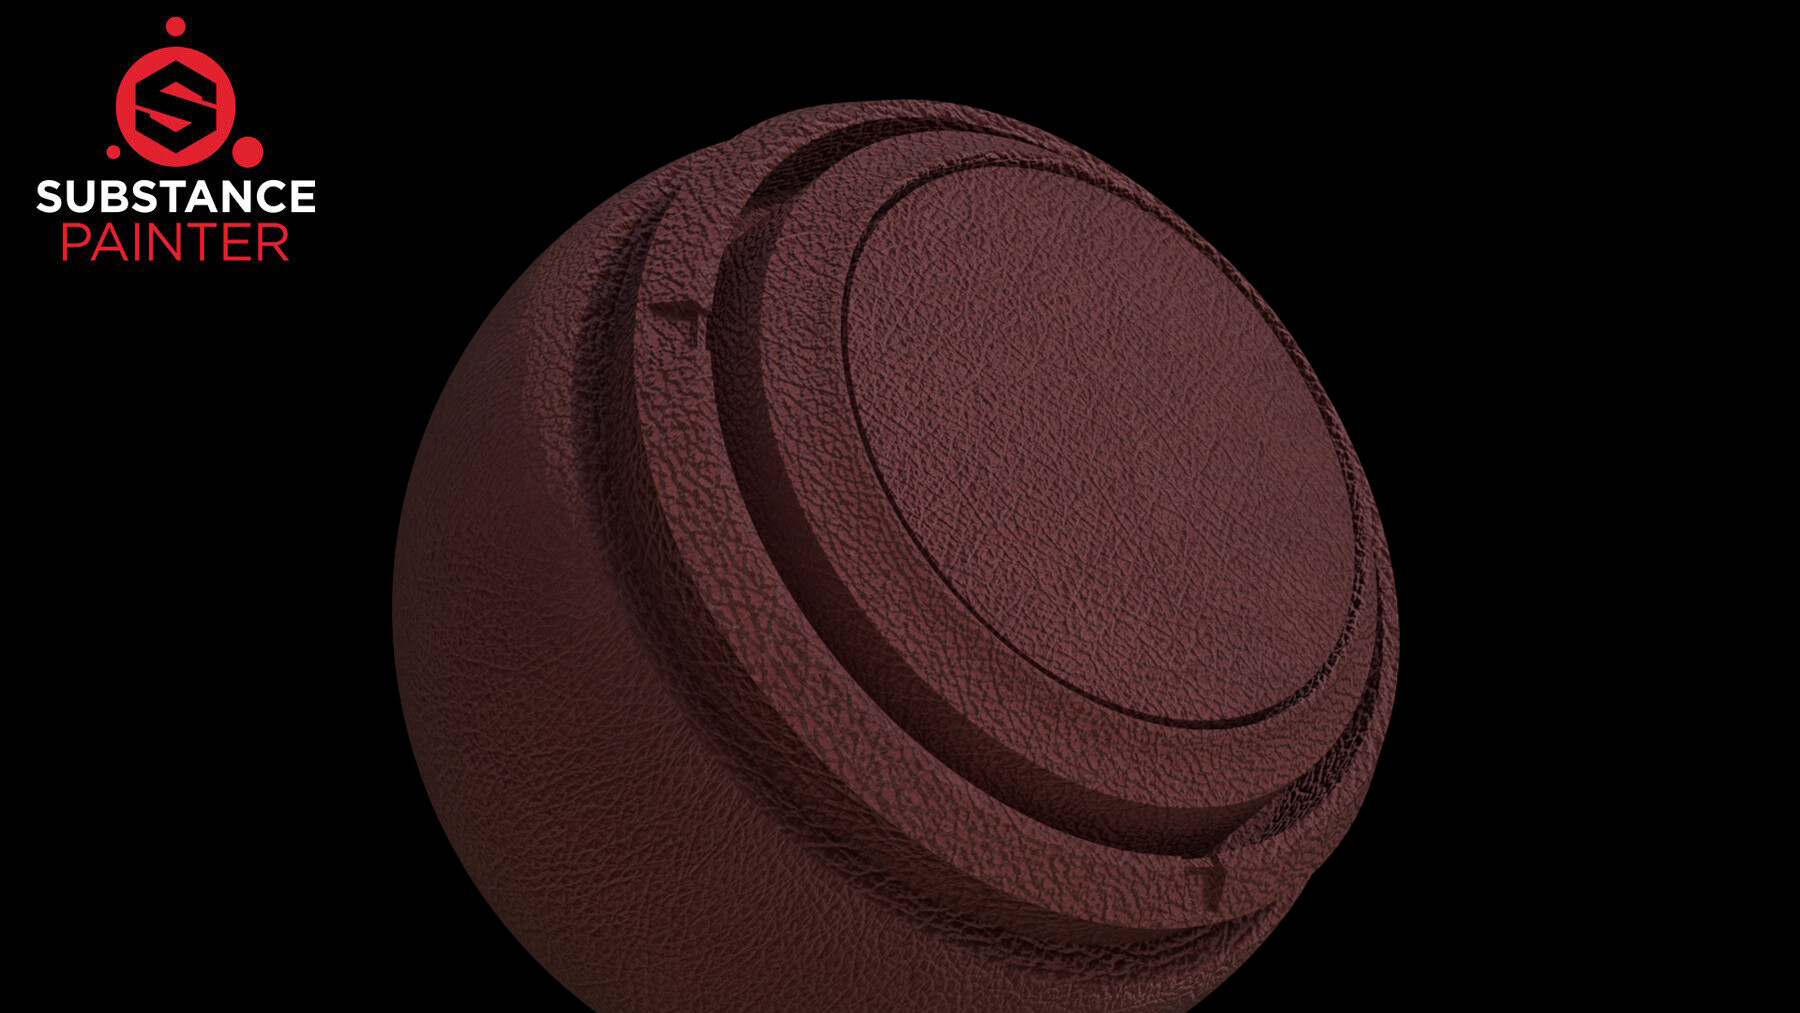 product image 21